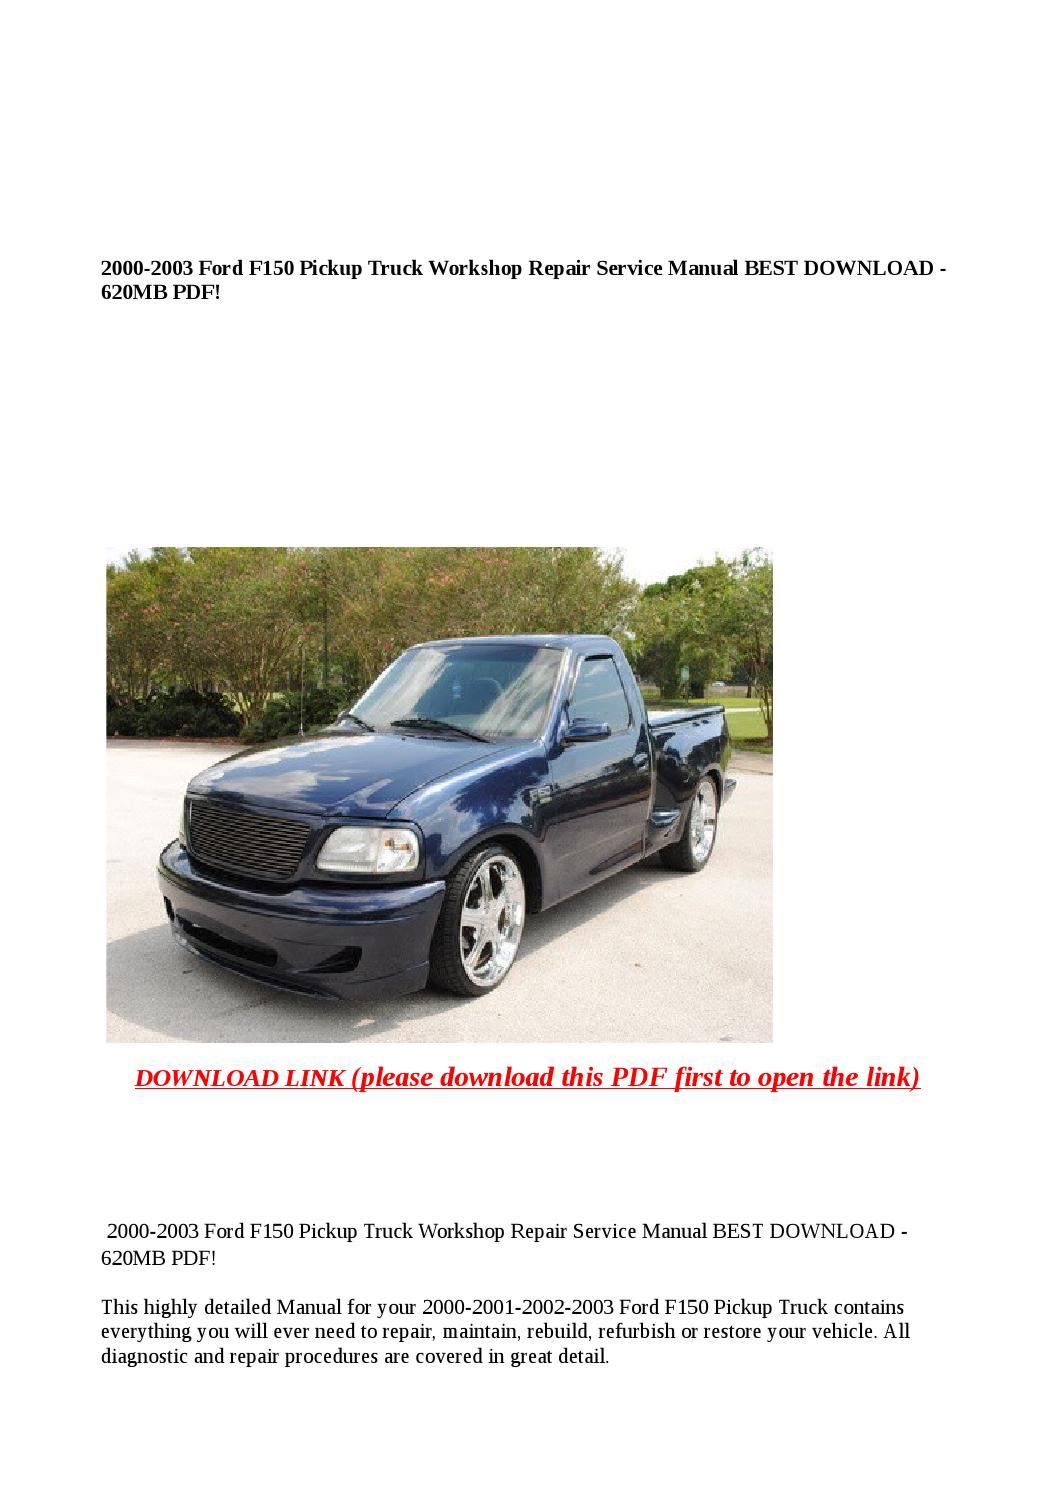 2003 ford f150 factory service manual